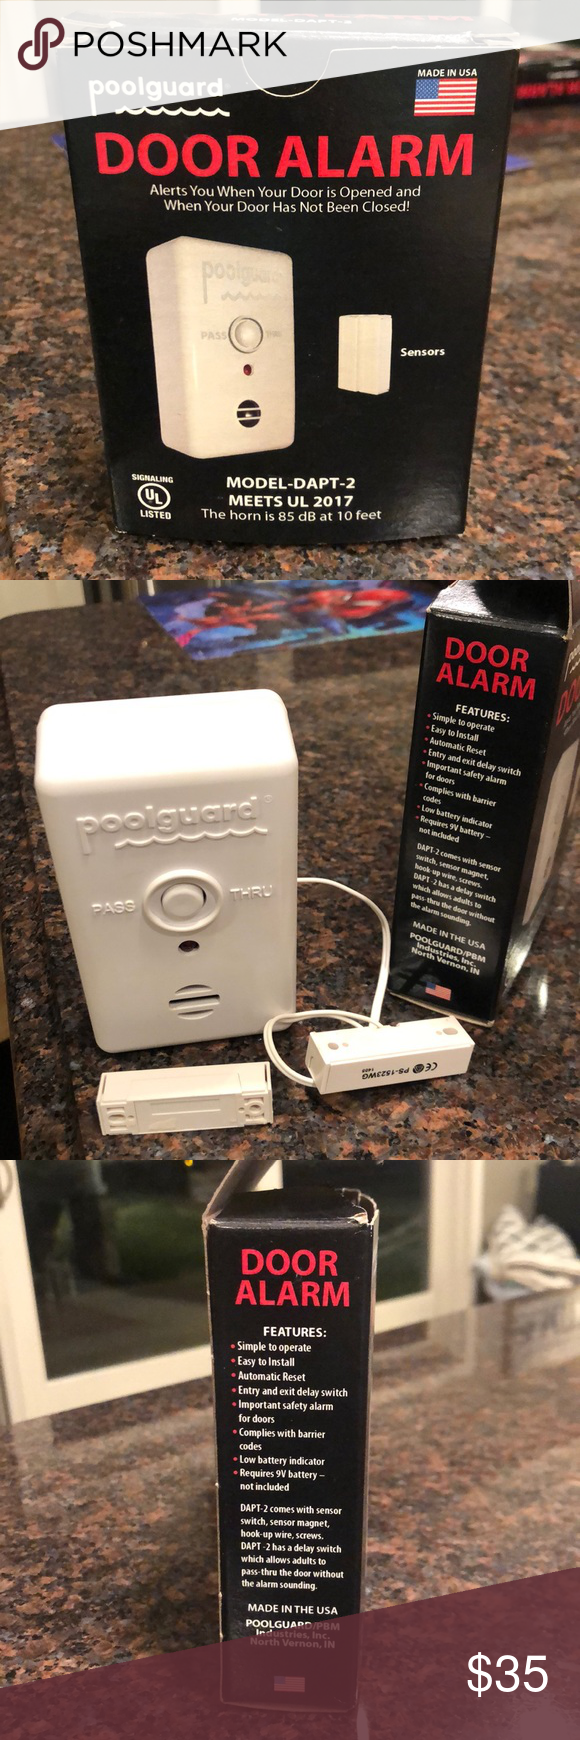 Pool Guard Door Alarm Poolguard Door Alarm This Is Great For Anyone With Small Children Animals Or For Anyone Who In 2020 Door Alarms Things To Sell The Door Is Open